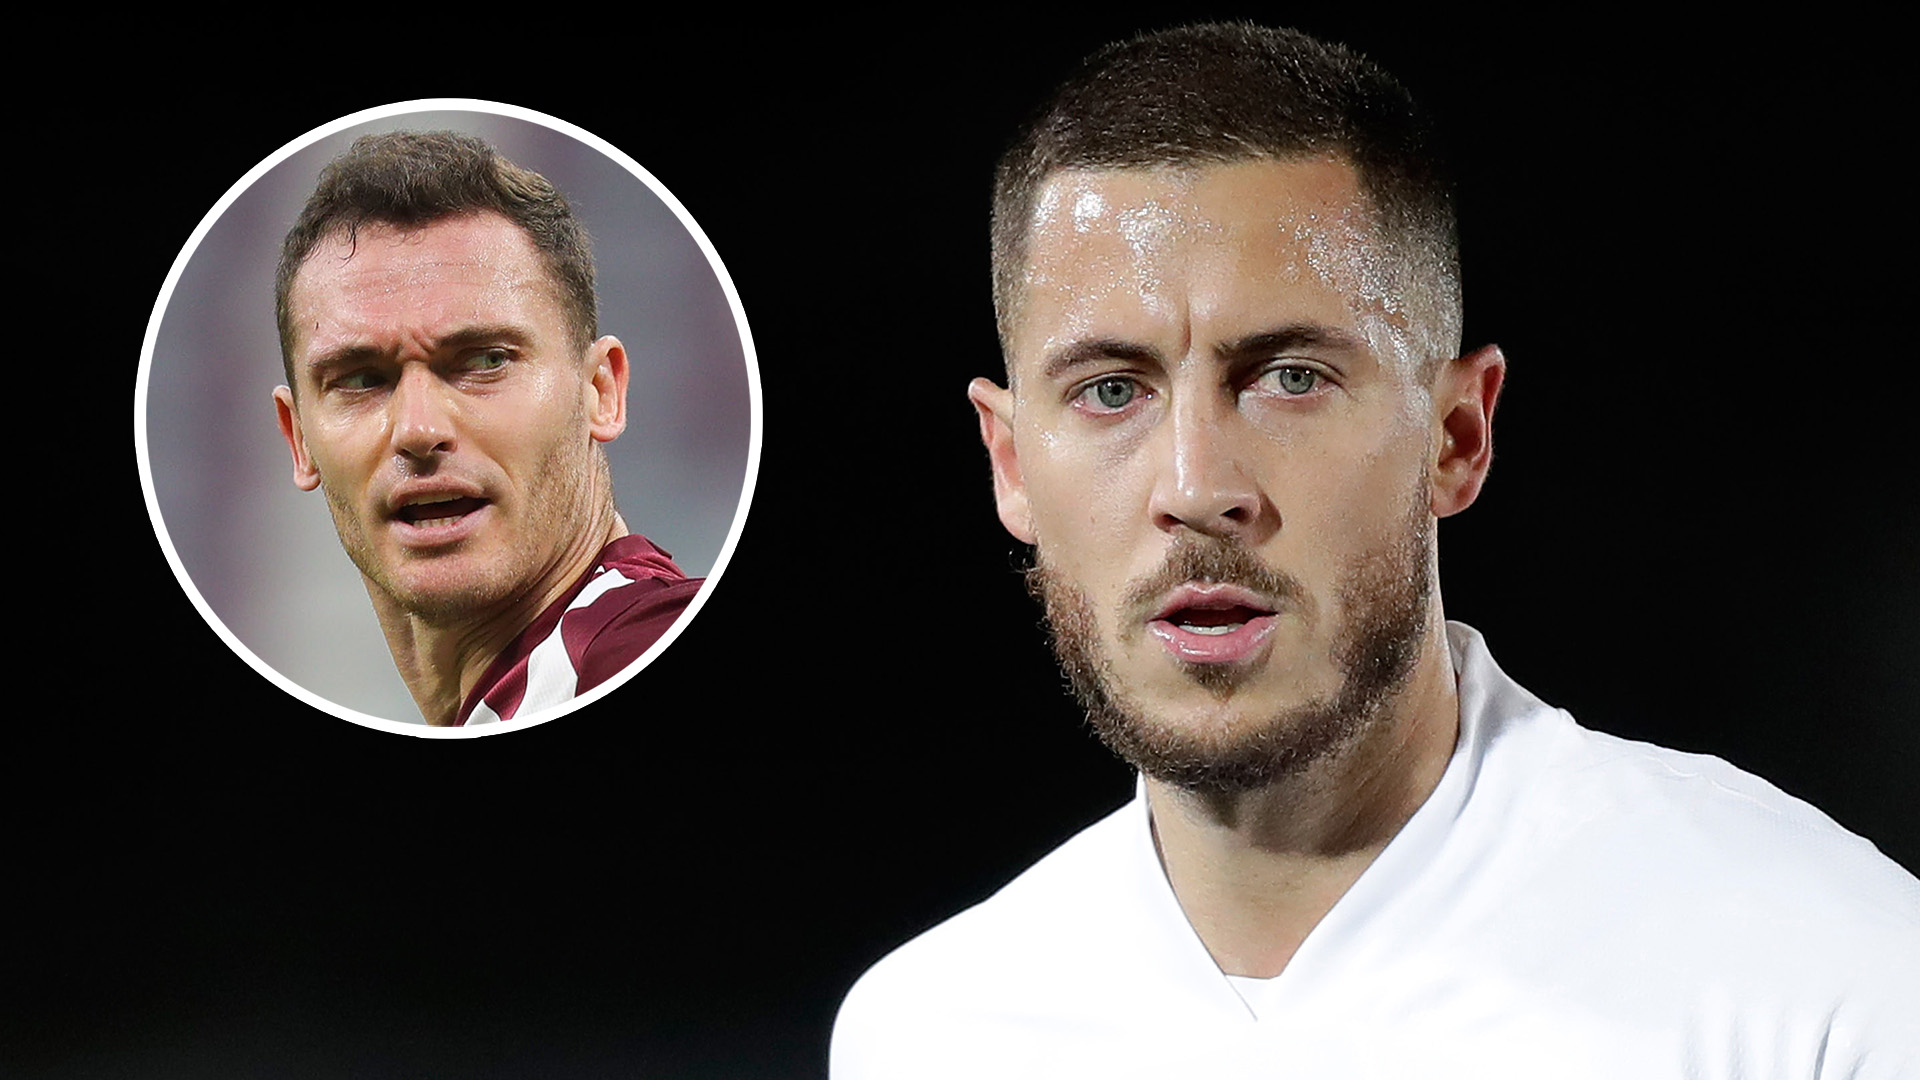 'It's not his fault!' - Vermaelen defends Hazard amid injury struggles & claims he will get back to his best